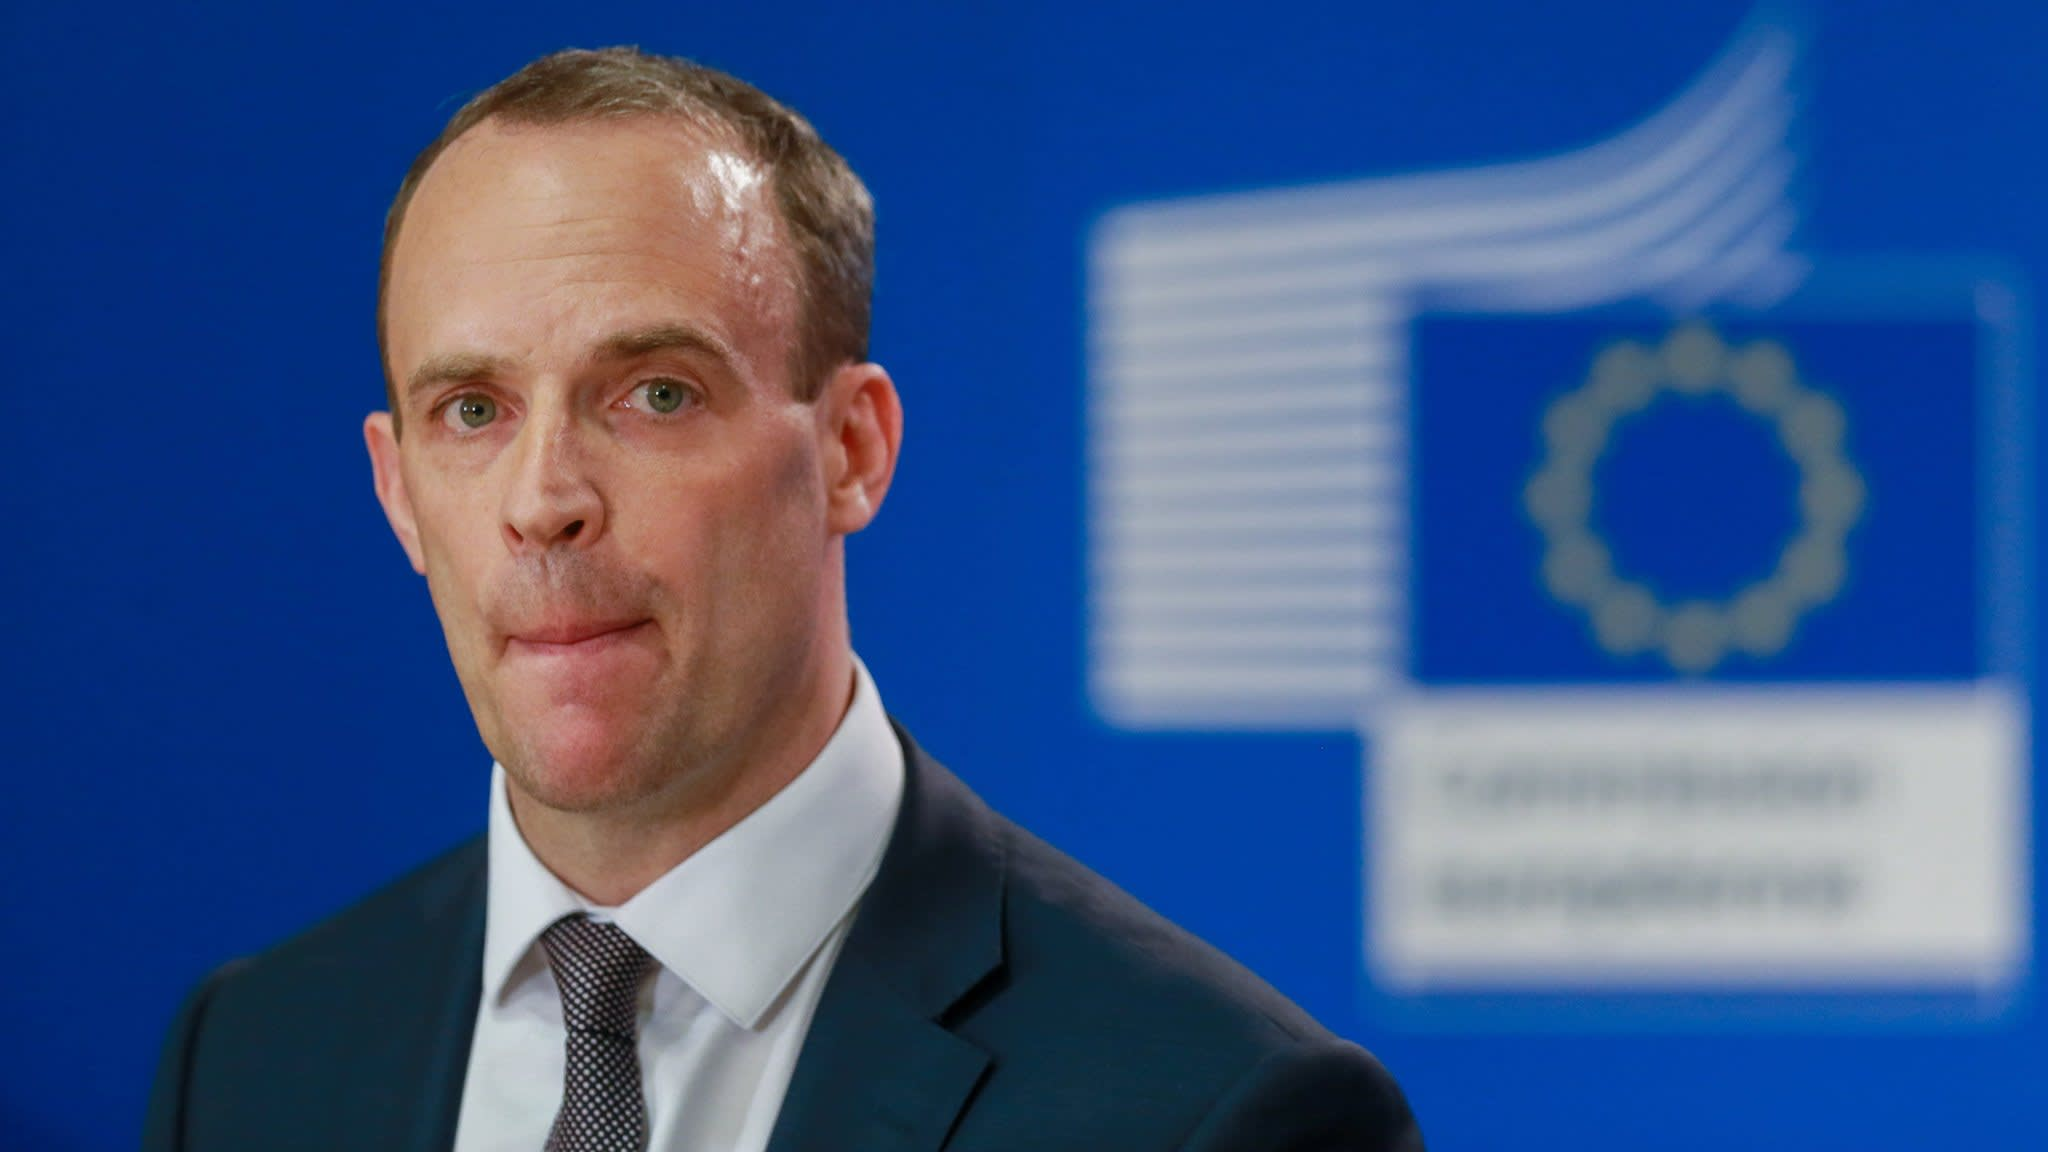 Raab warns UK must not be bullied on Brexit